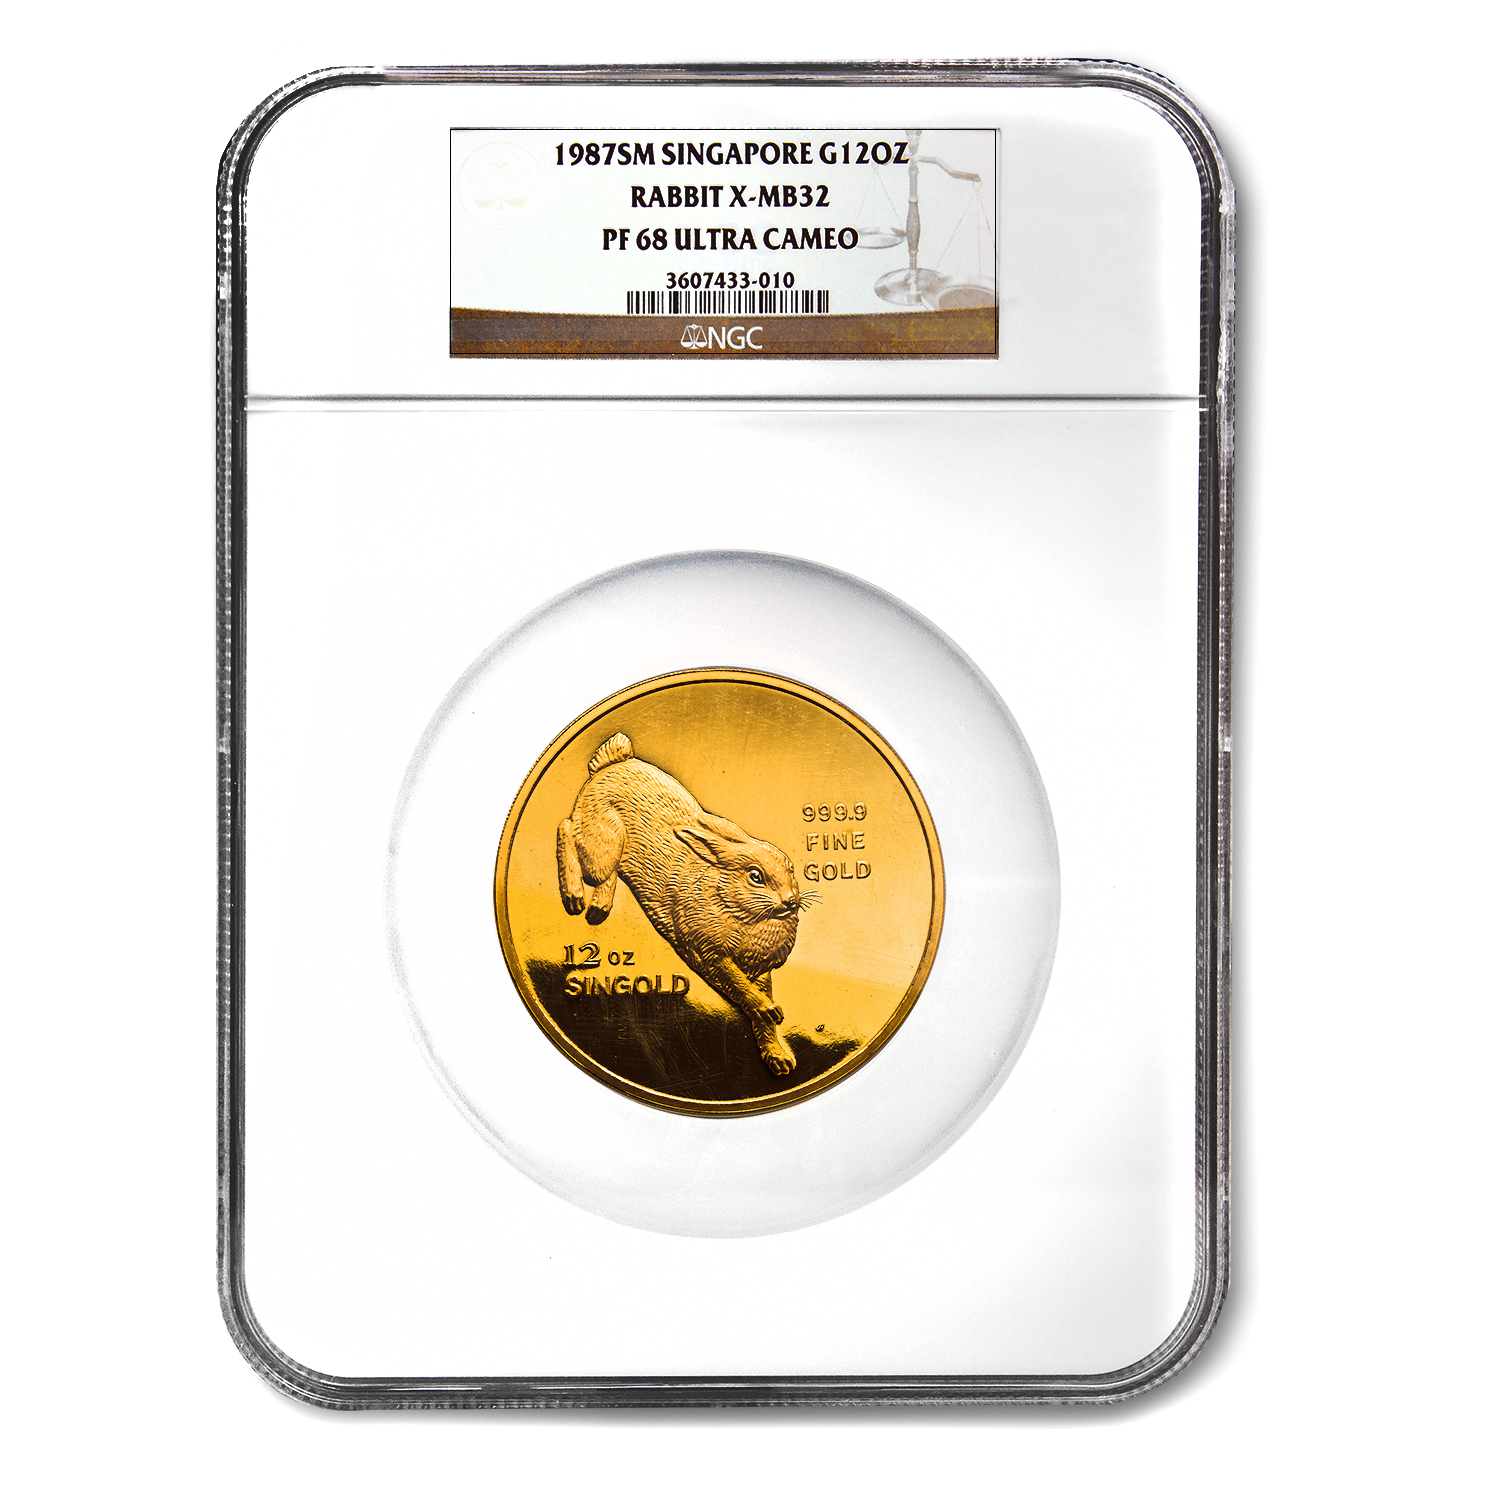 1987 Singapore 12 oz Proof Gold Singold Rabbit PF-68 NGC